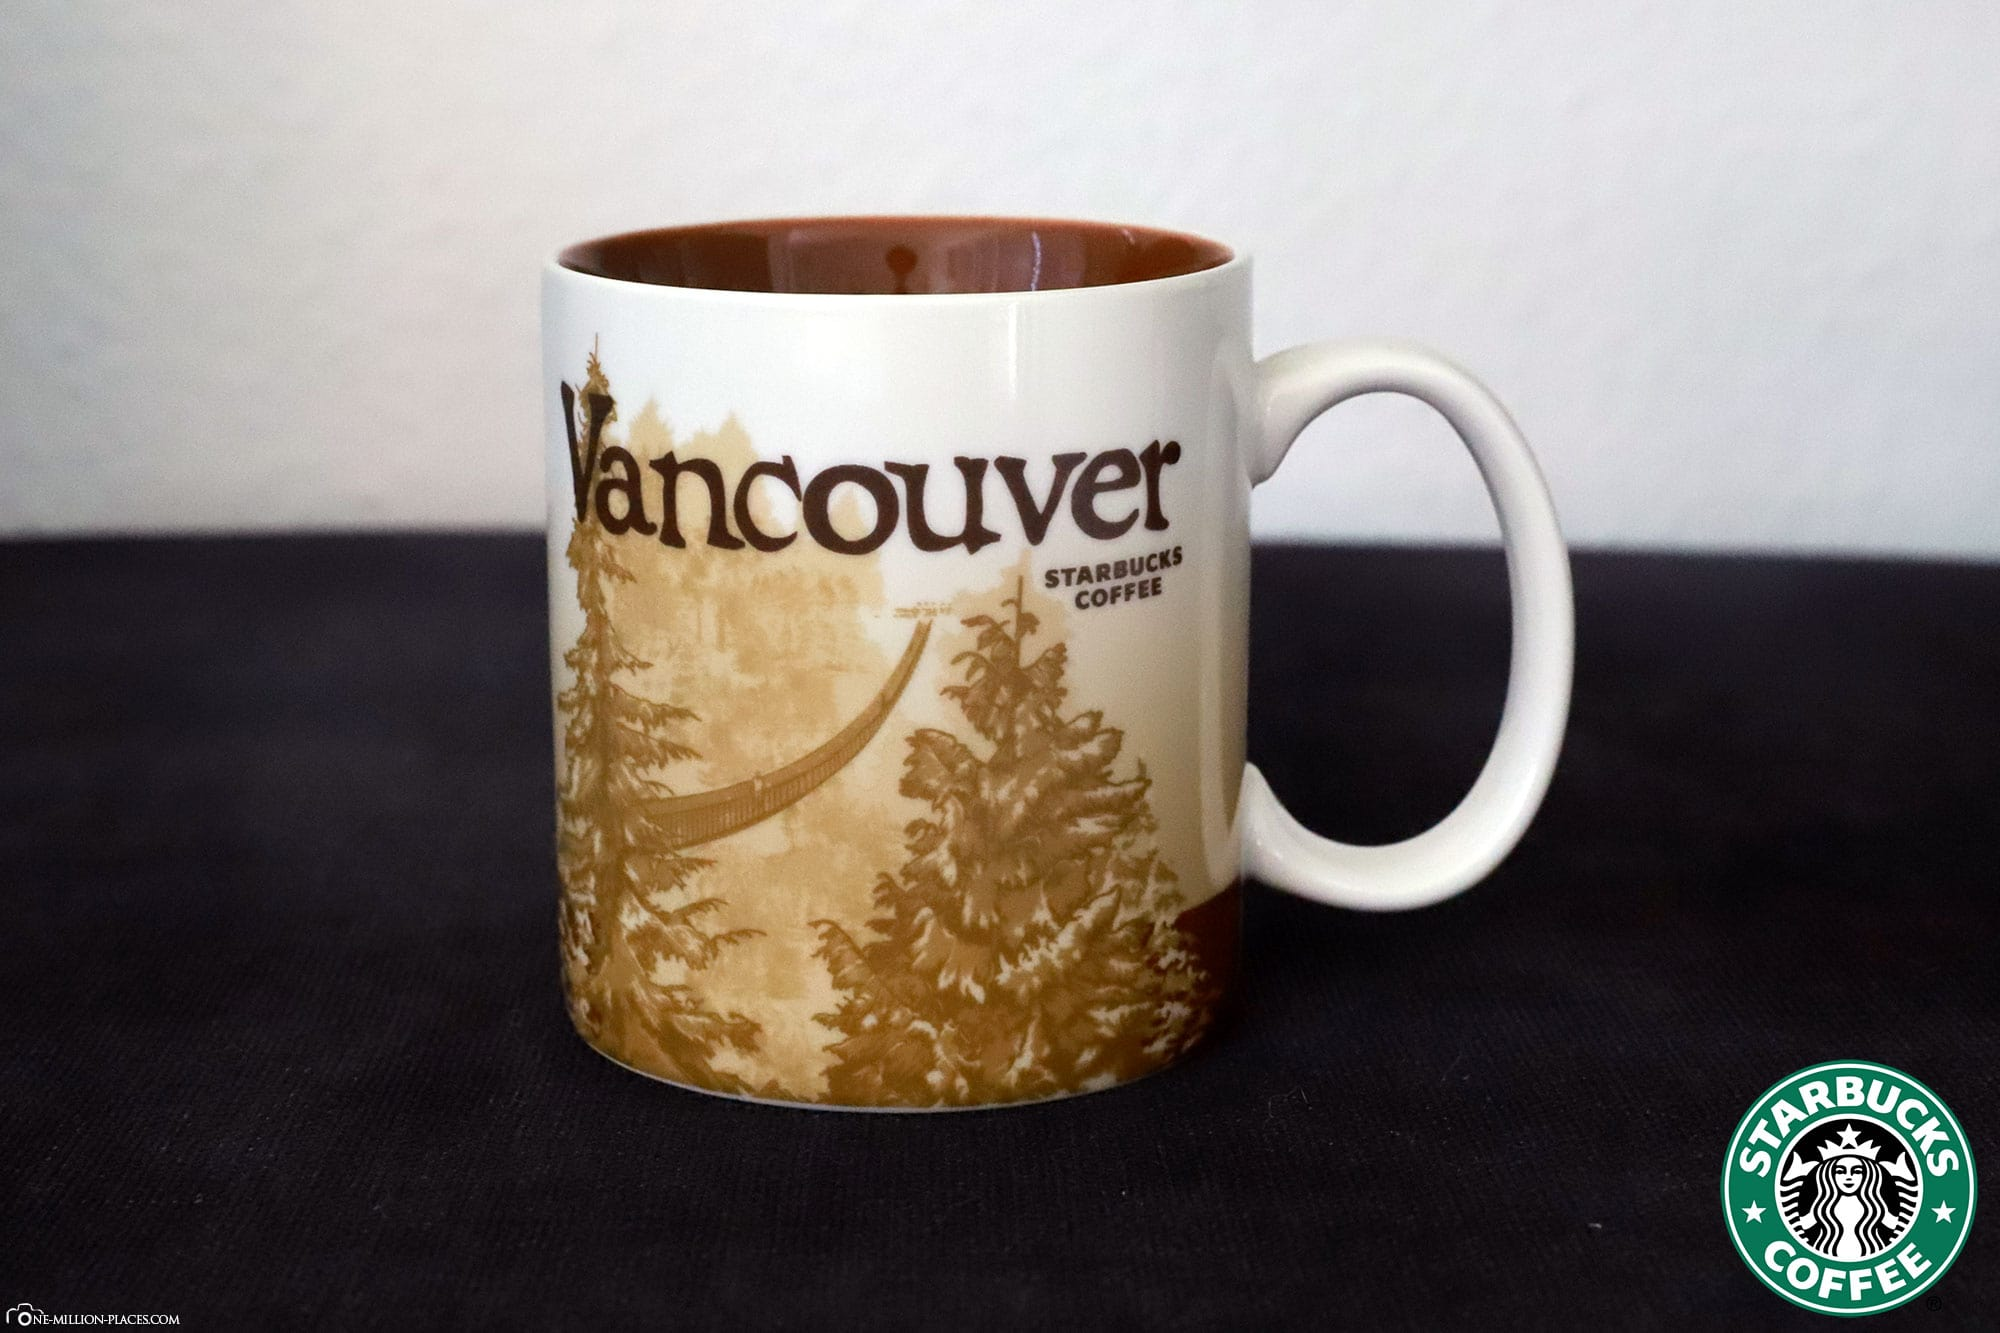 Vancouver, Starbucks Cup, Global Icon Series, City Mugs, Collection, Canada, Travelreport